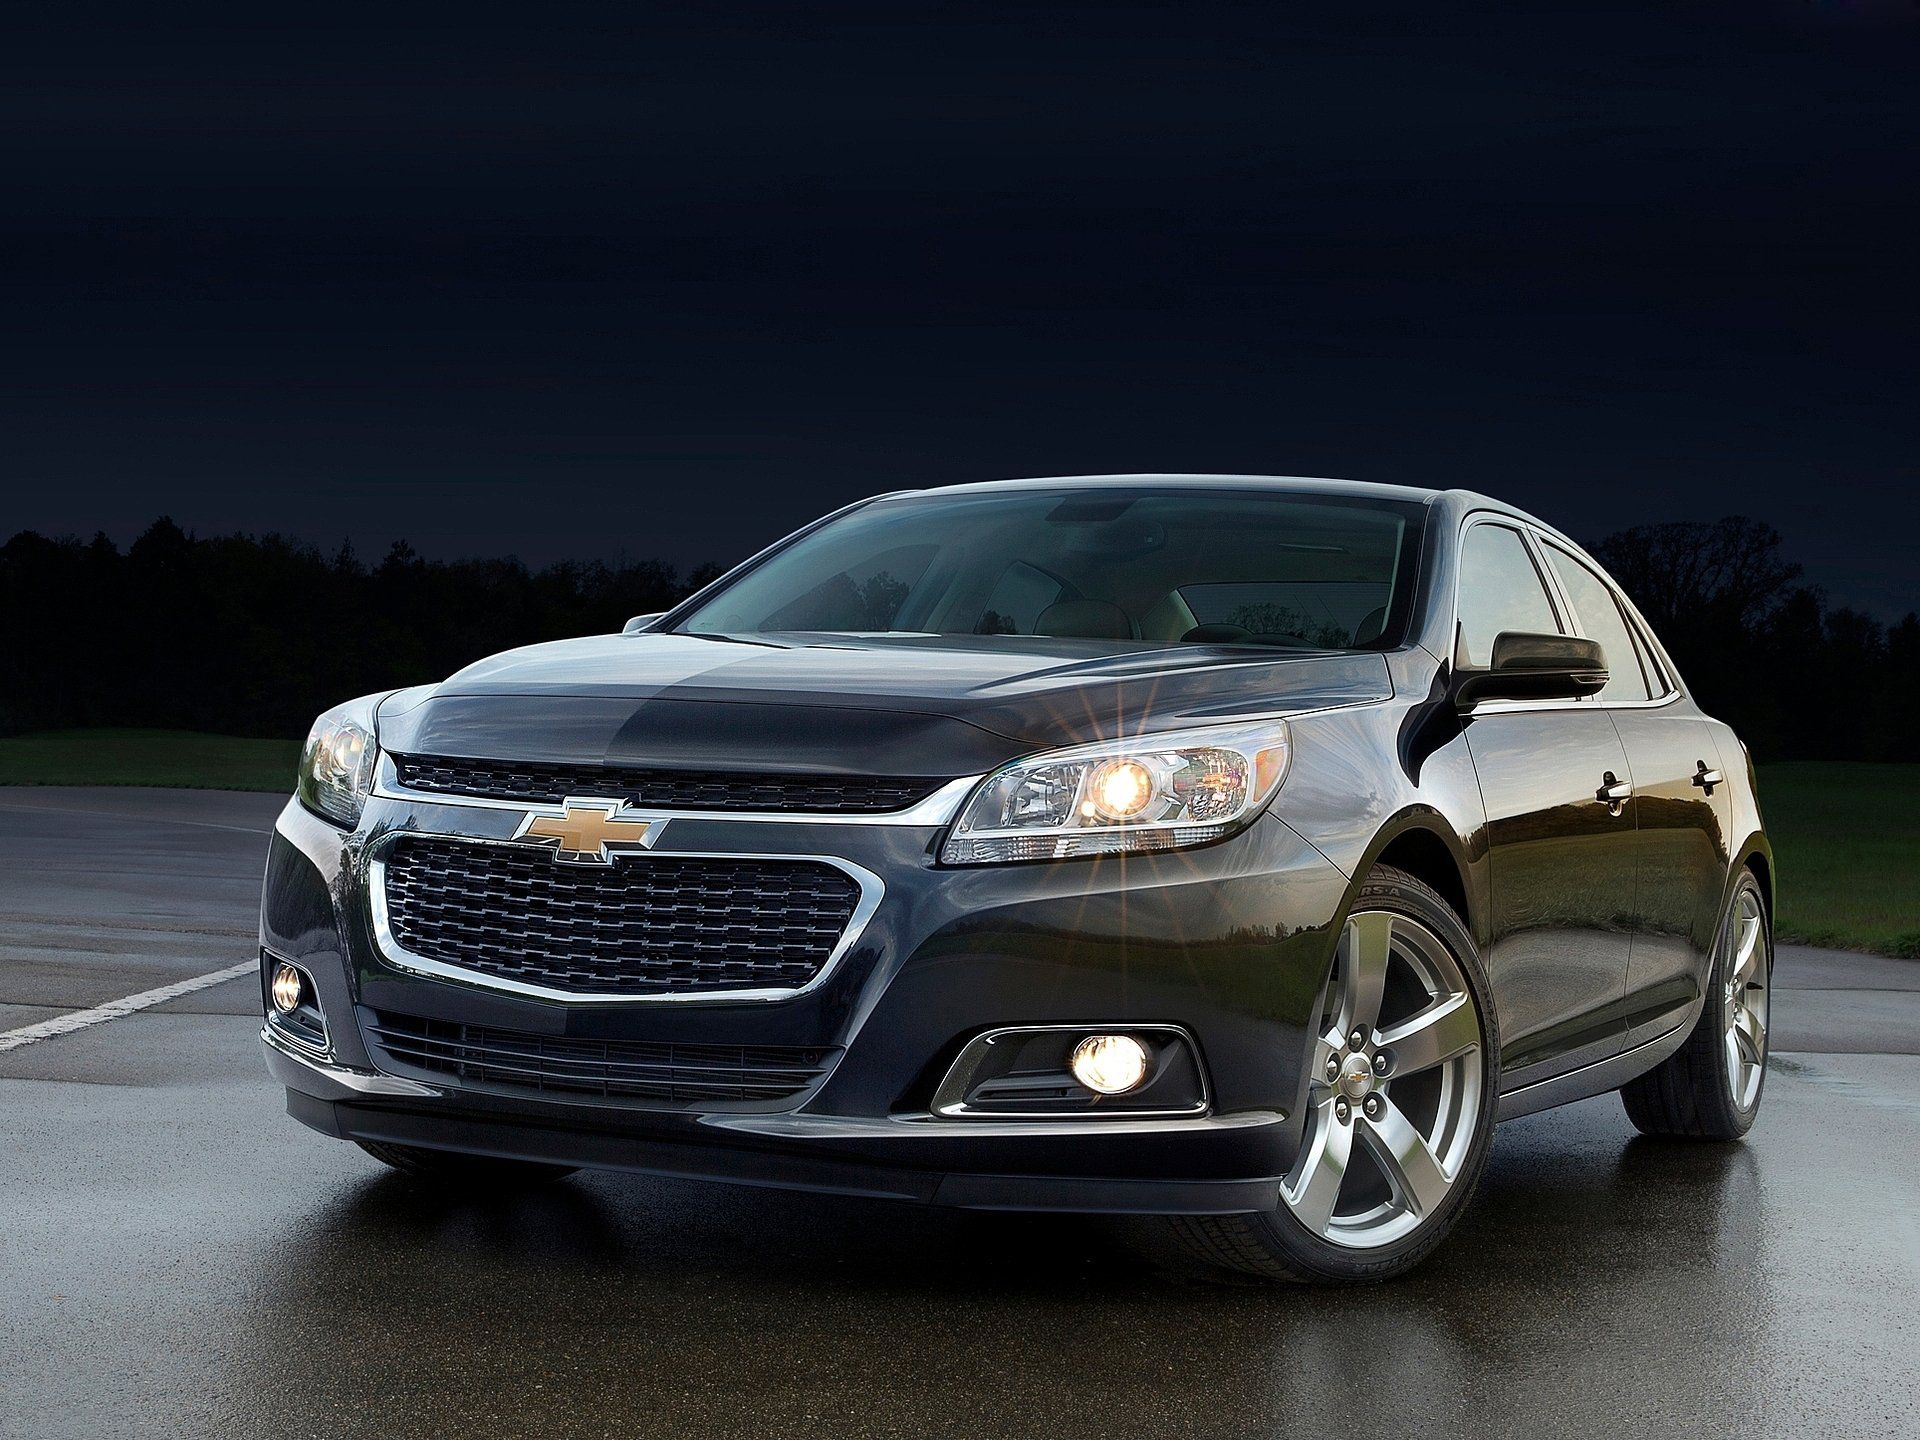 Chevrolet Malibu 2014 Hd Images And Photos Chevrolet Malibu